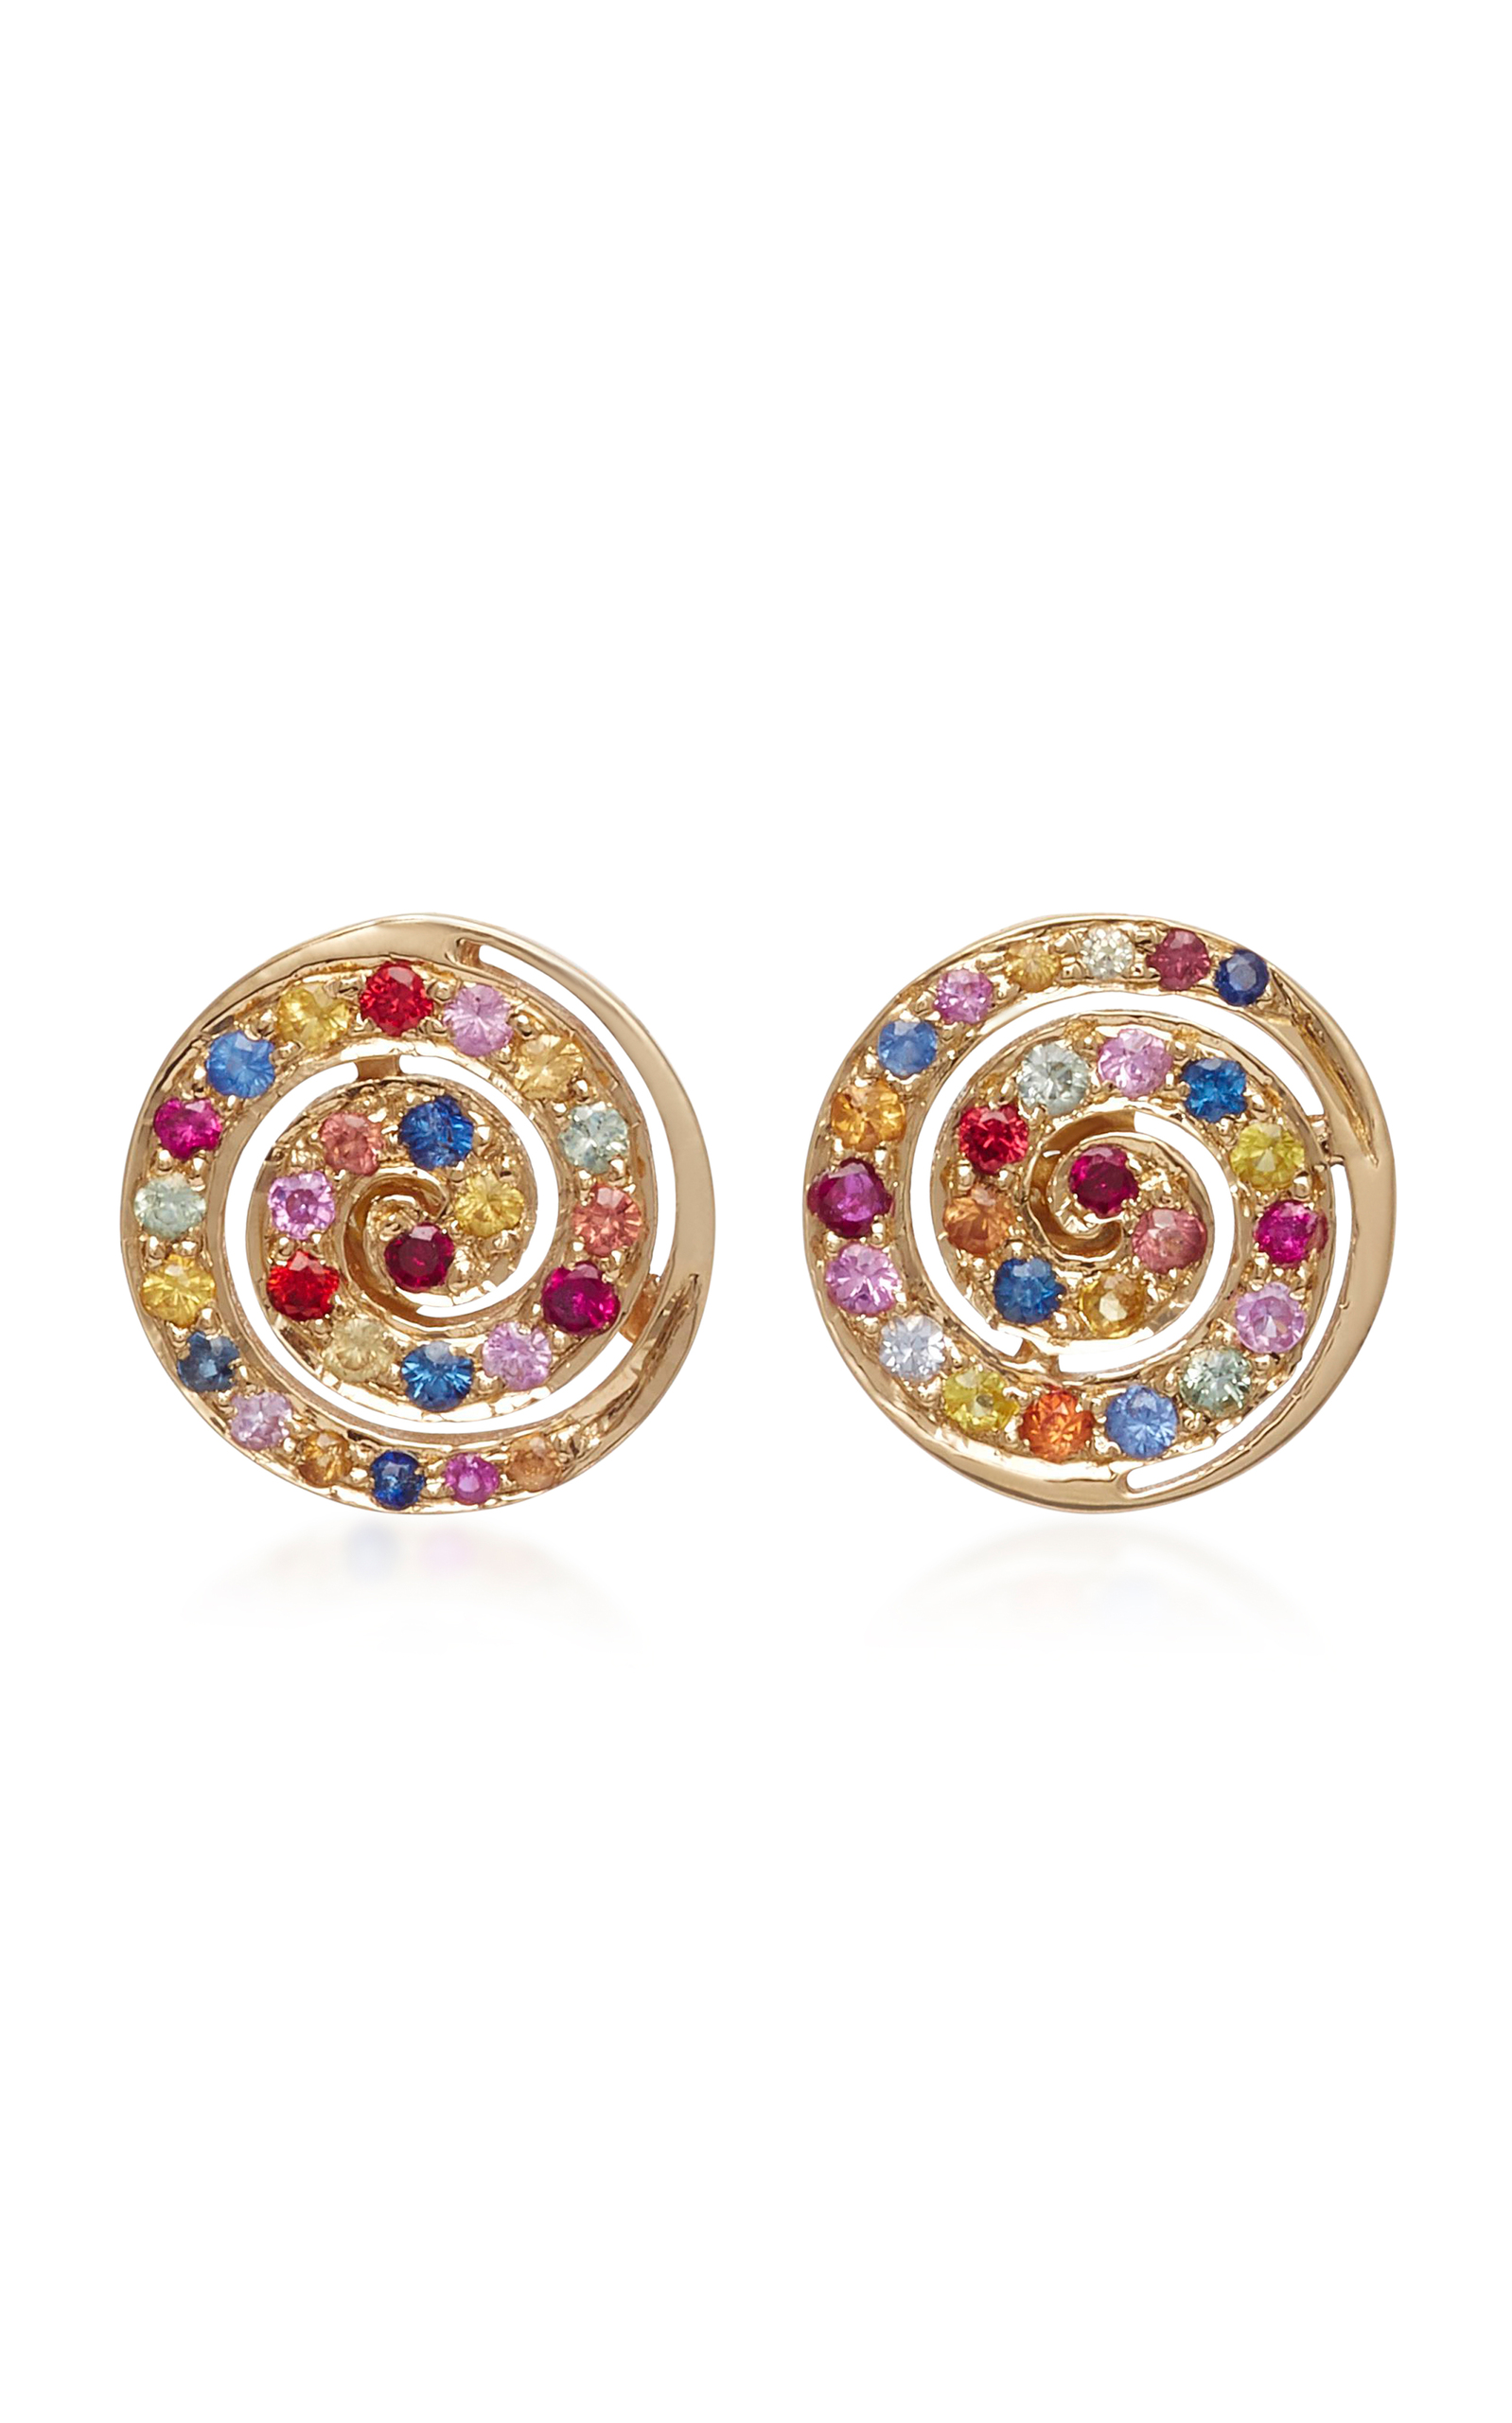 SHE BEE 14K YELLOW GOLD AND SAPPHIRE BUTTON STUDS